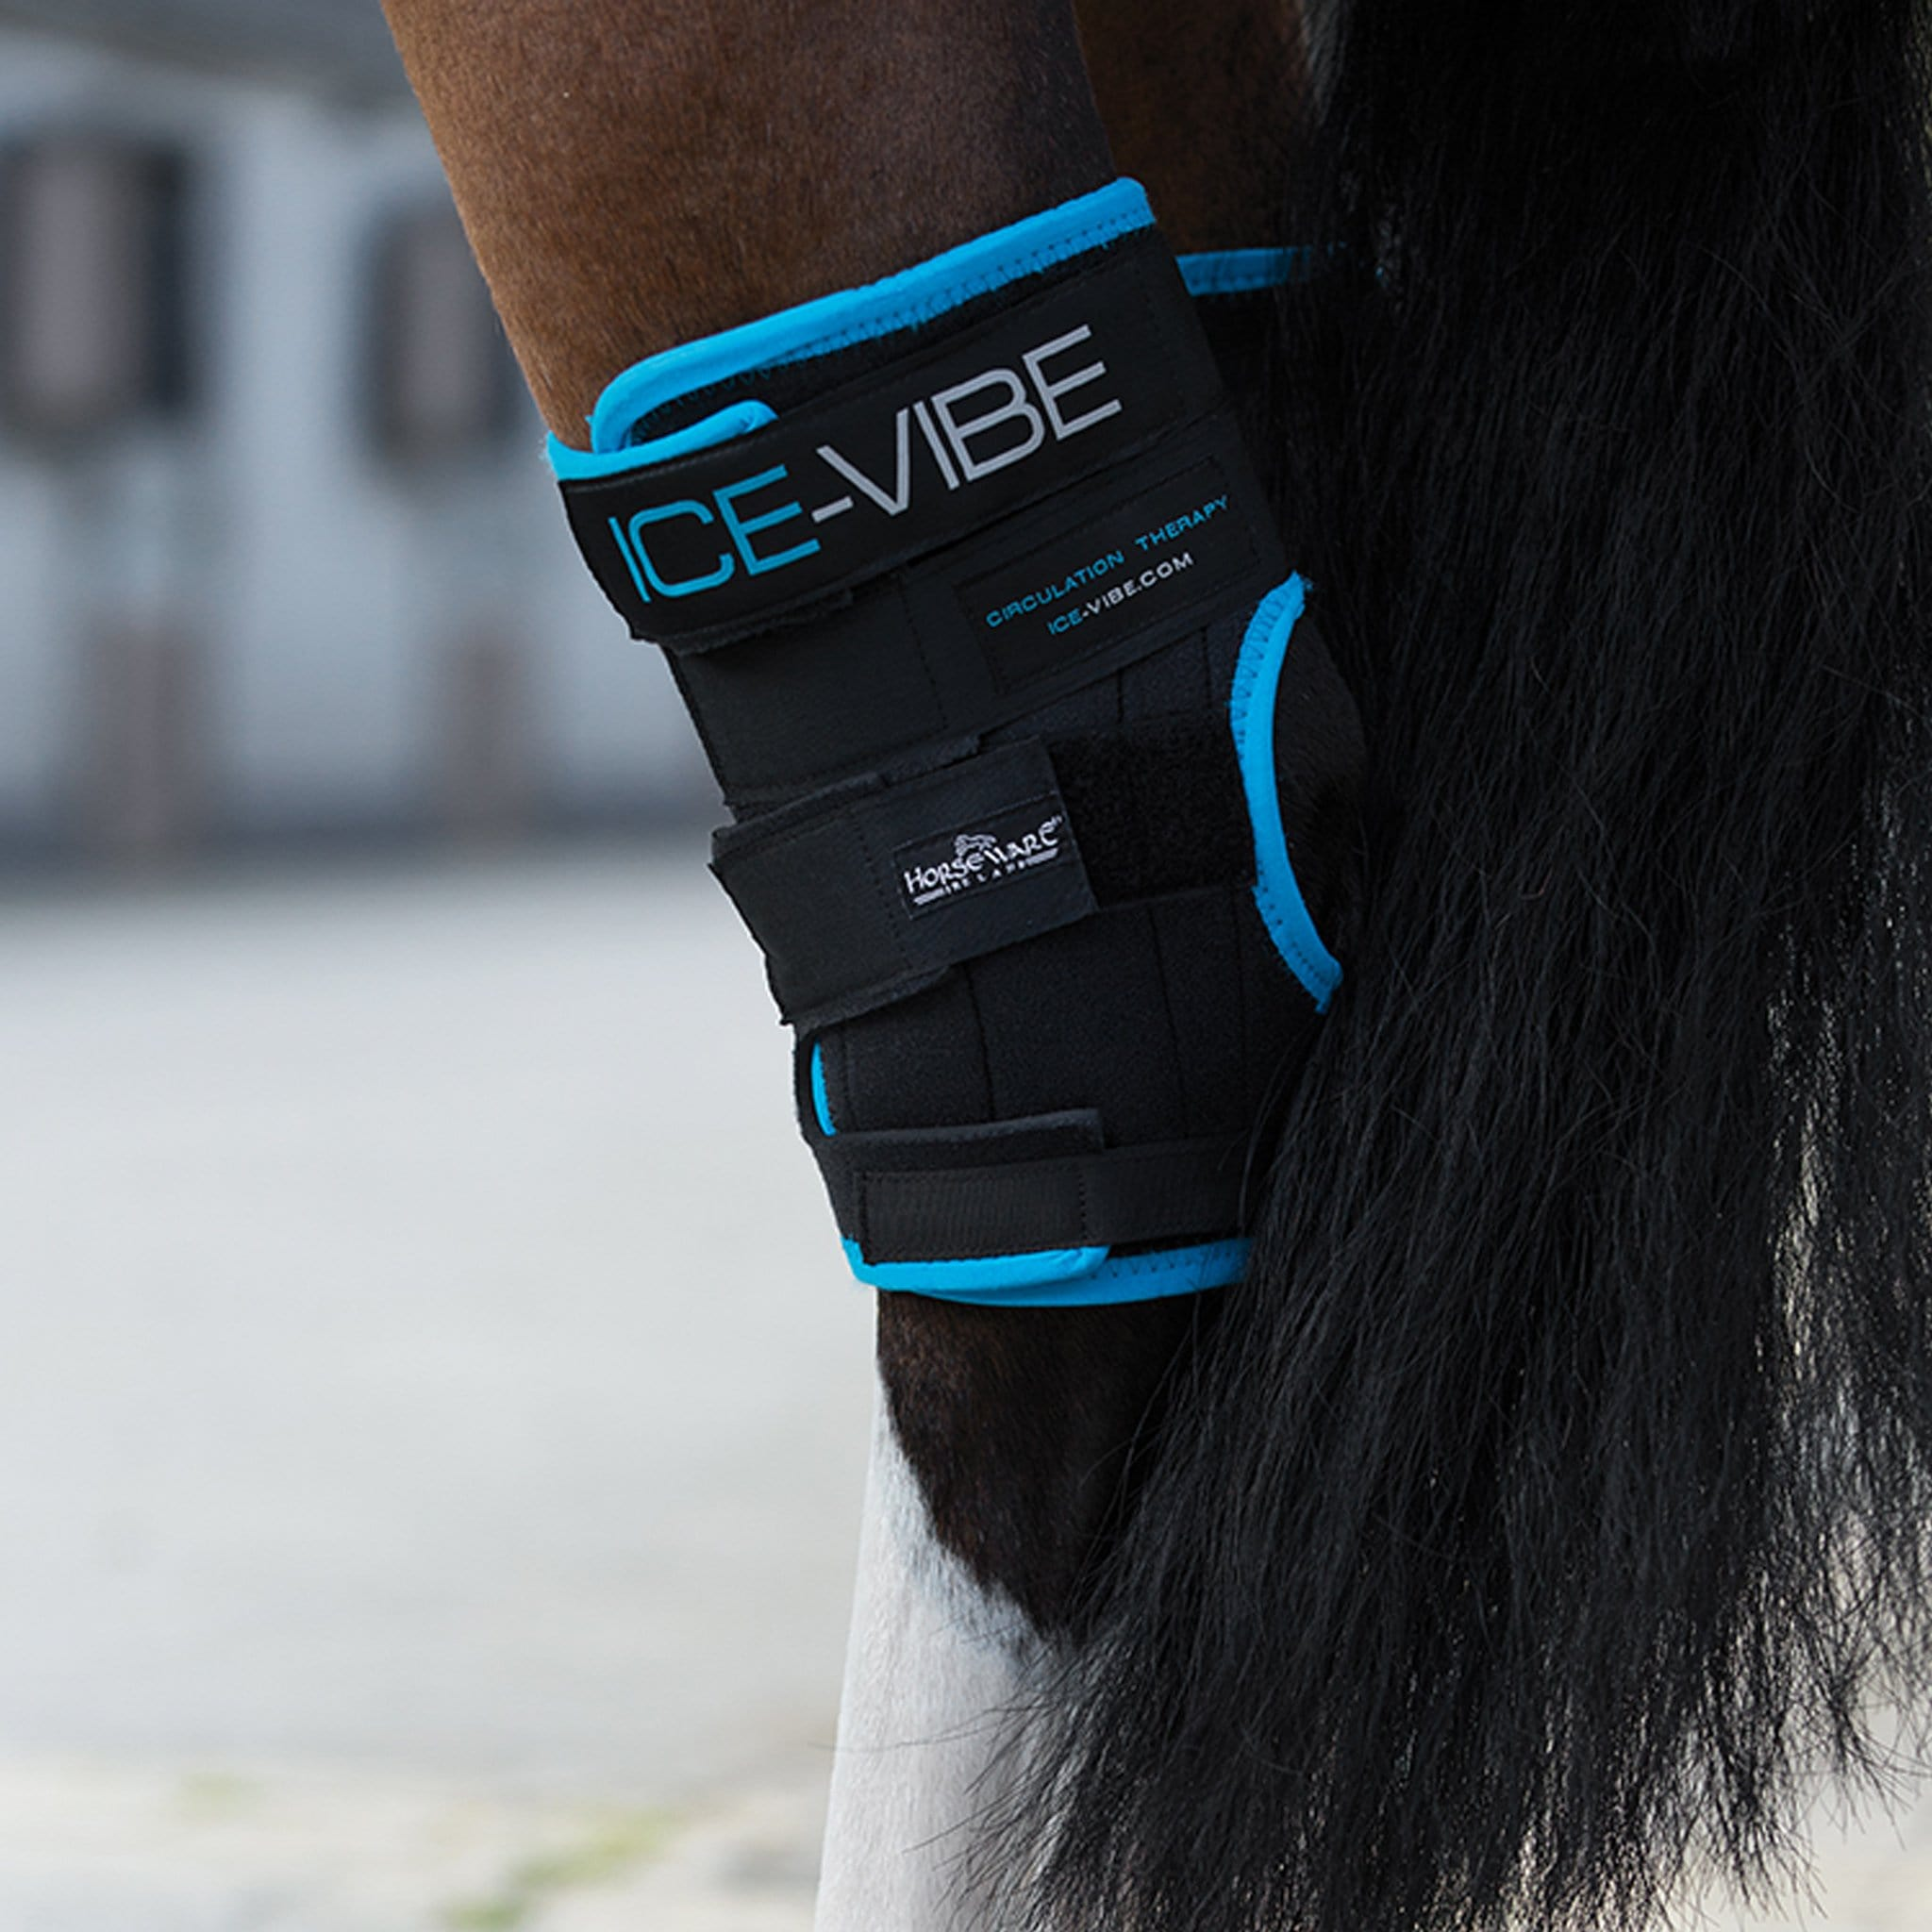 Horseware Ice-Vibe Hock Wraps DBHK71 Black and Teal Full